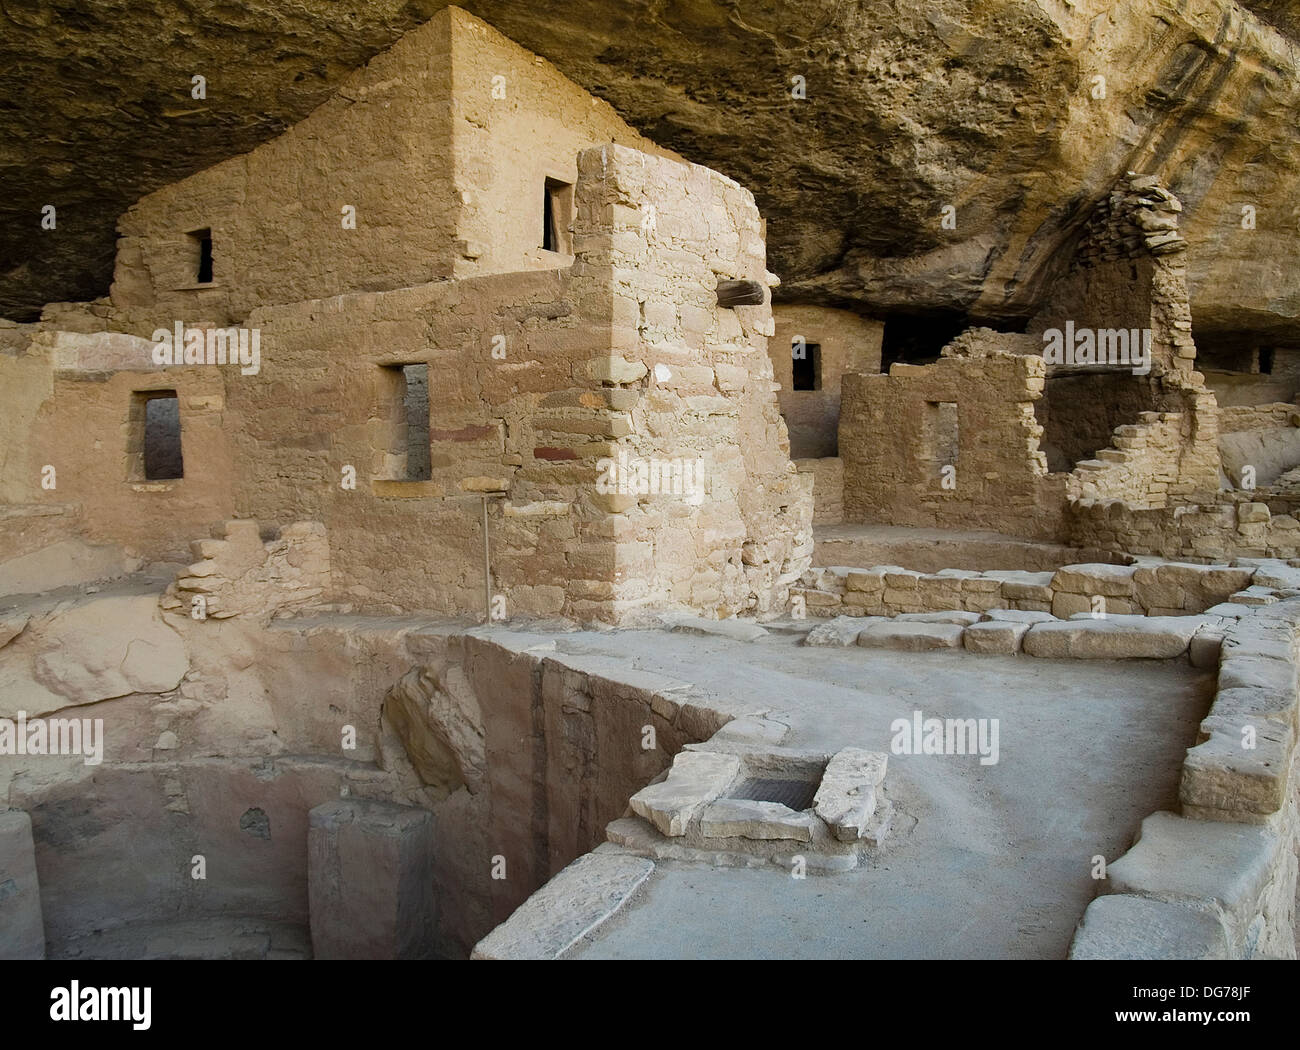 The Spruce Tree House at Mesa Verde National Park,Colorado Stock Photo